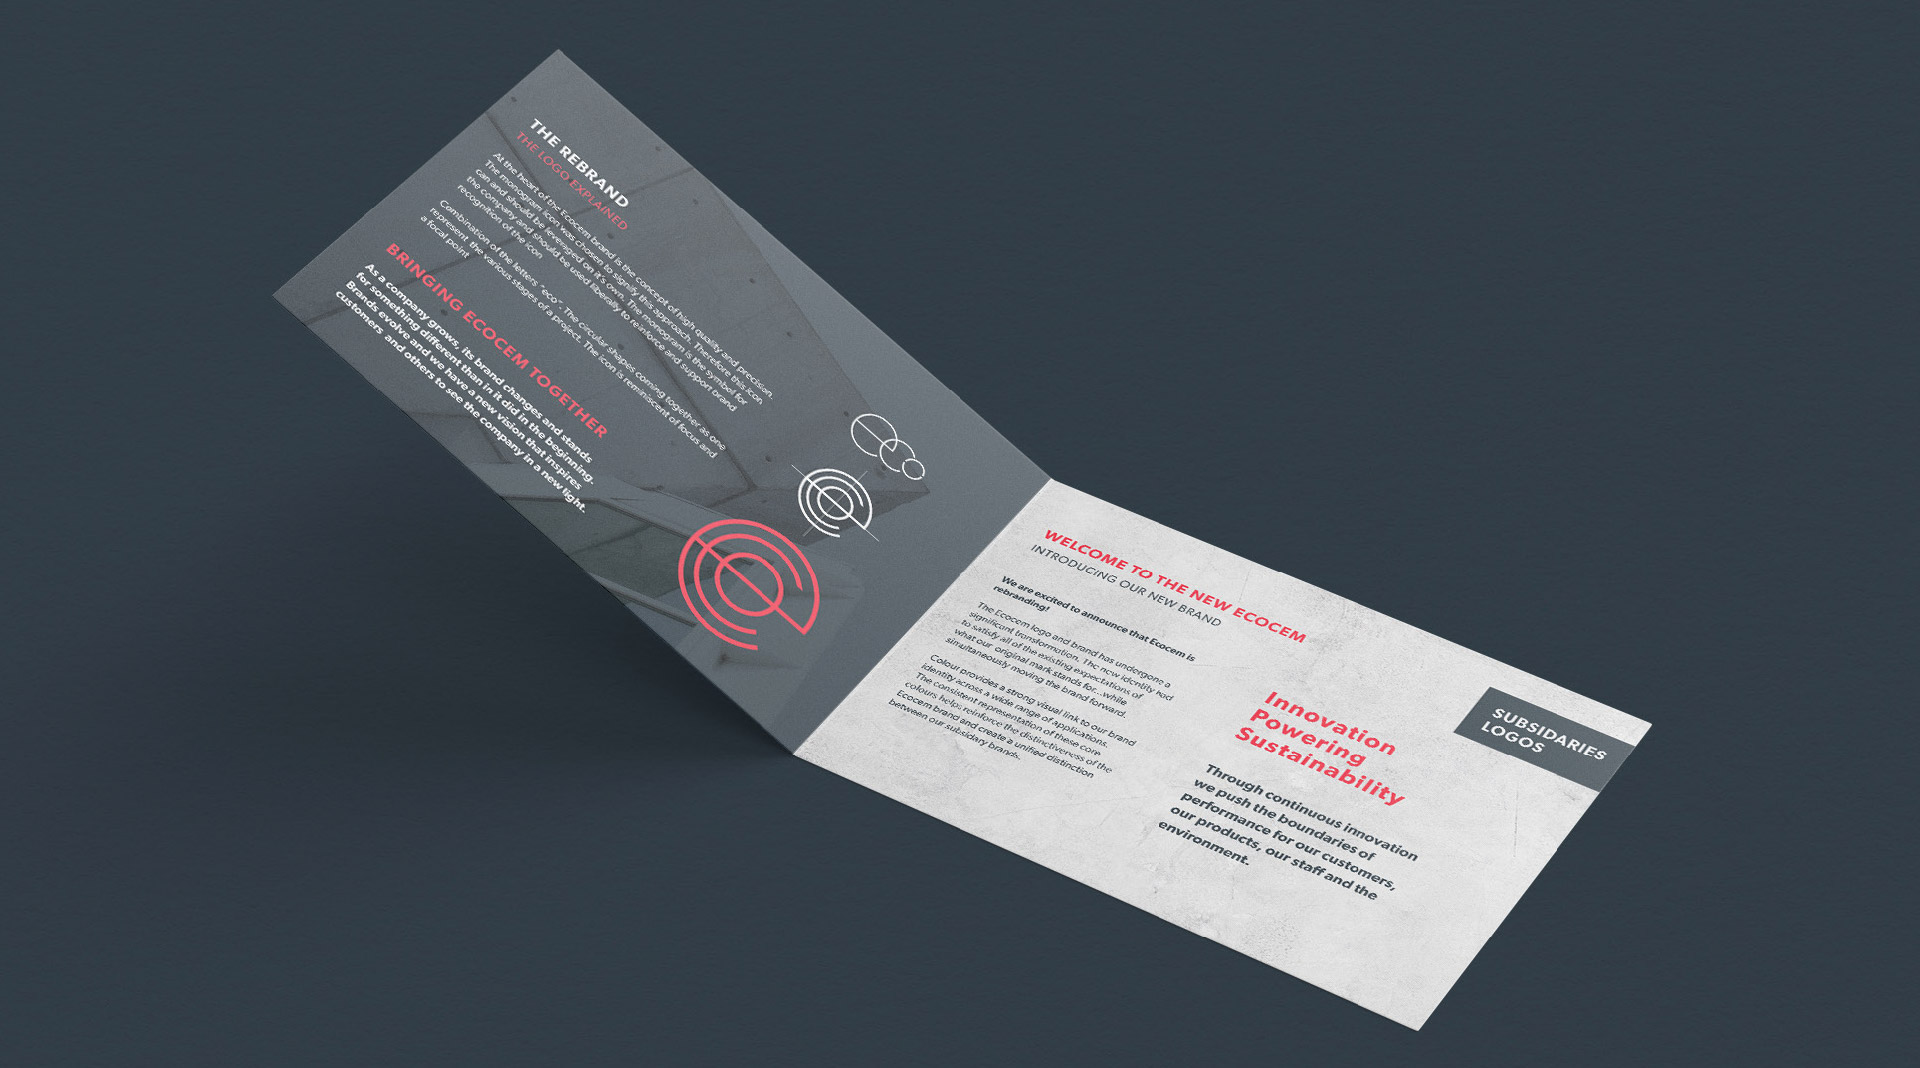 Ecocem materials brochure printed on specialist paper